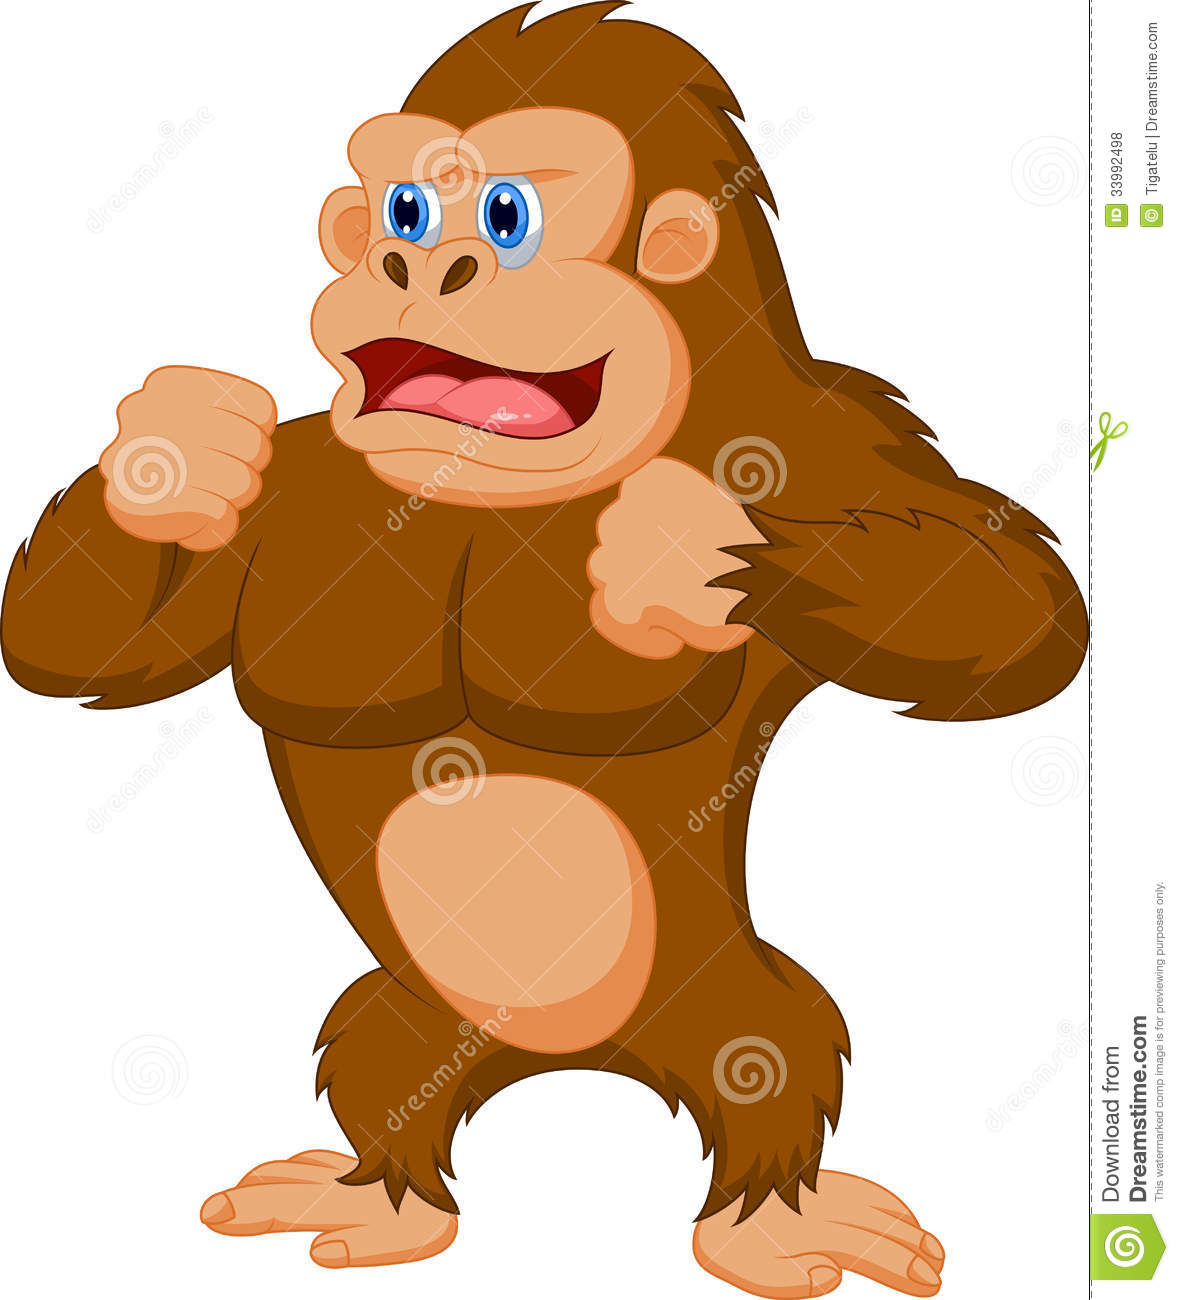 Gorilla Cartoon Royalty Free Stock Photos - Image: 33992498